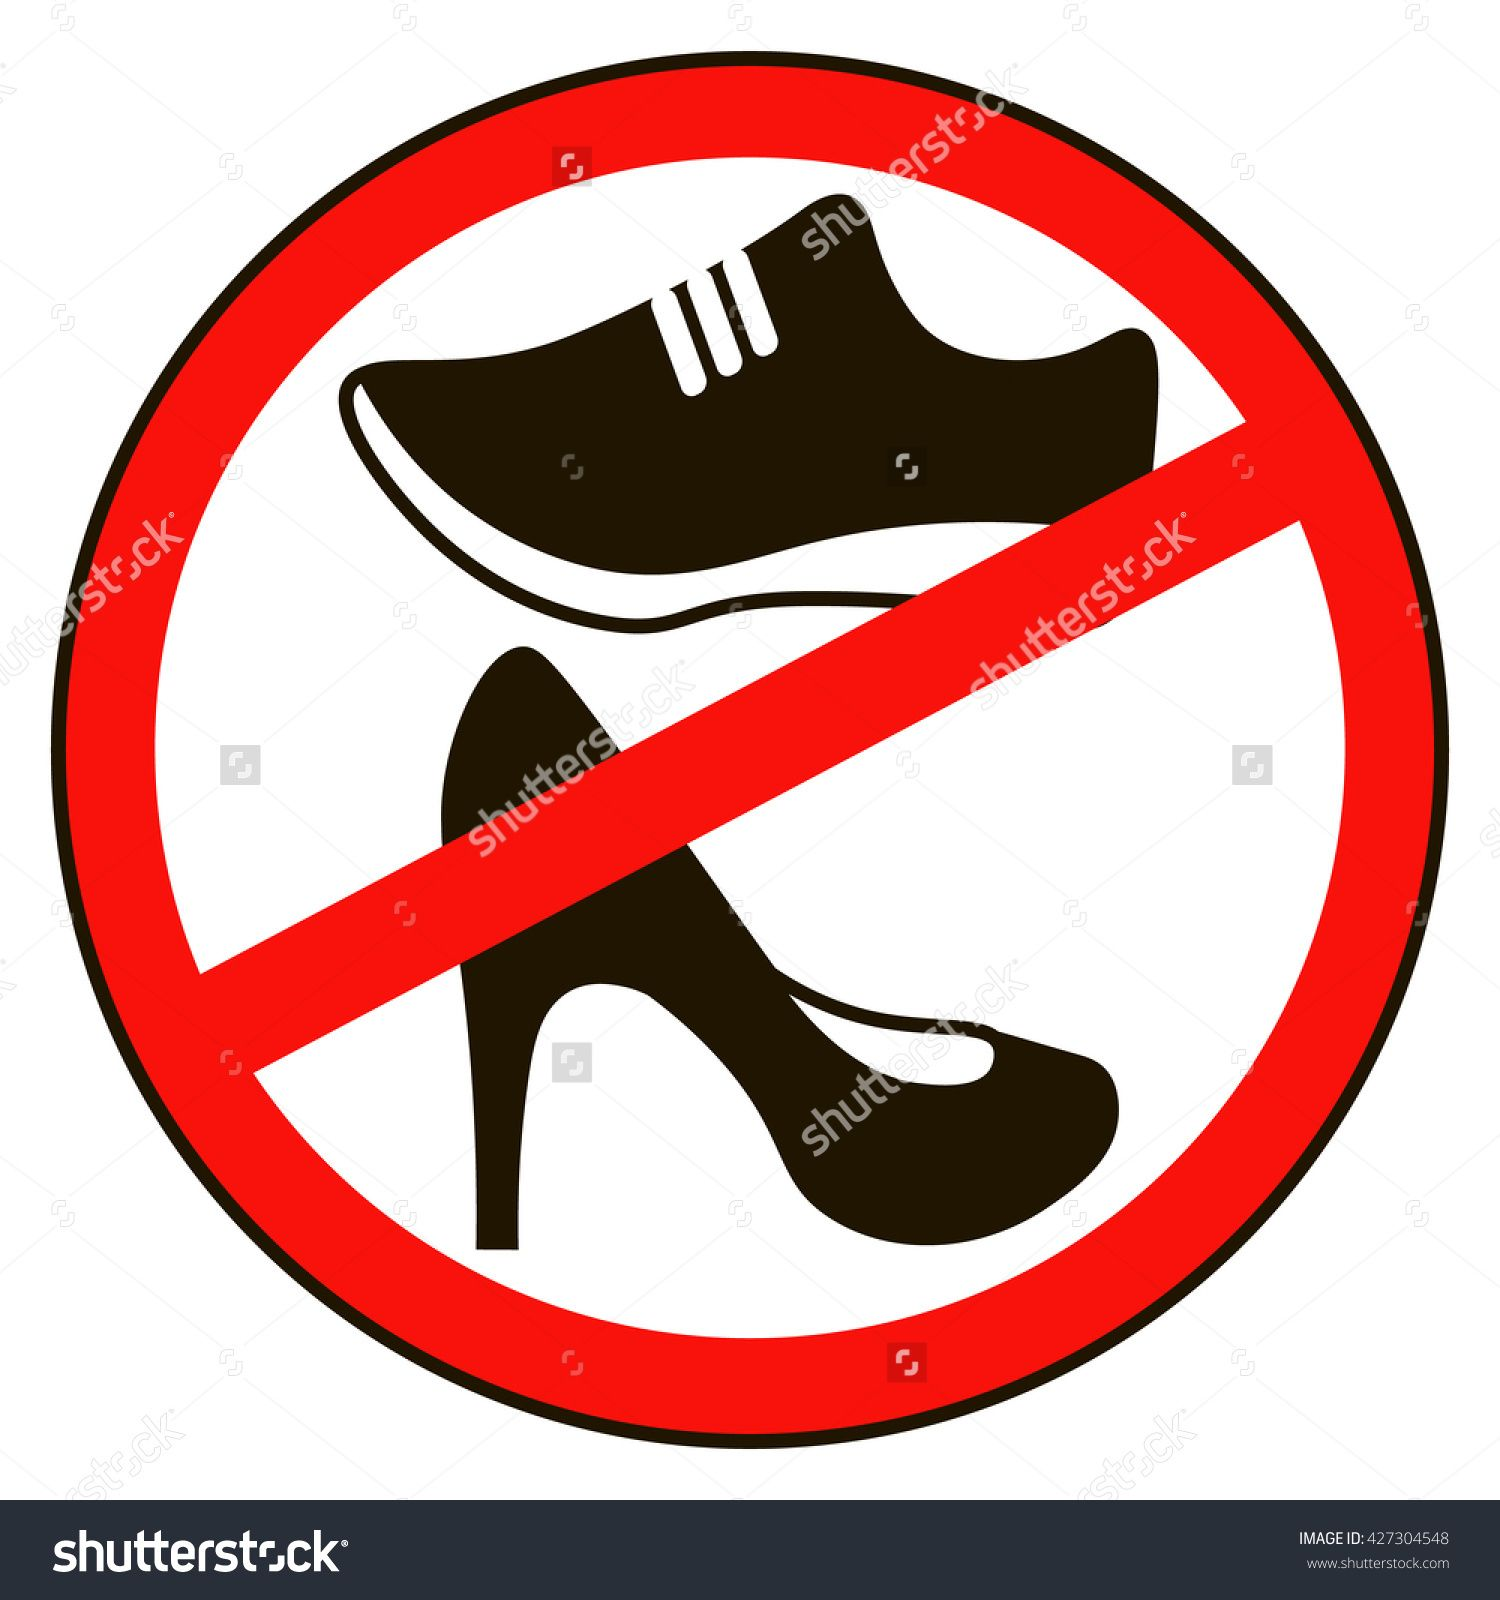 stock-vector-not-allowed-shoe-sign-warning-no-symbol-prohibited-public-information-icon-stop-label-shoe-in-427304548.jpg (1500×1600)